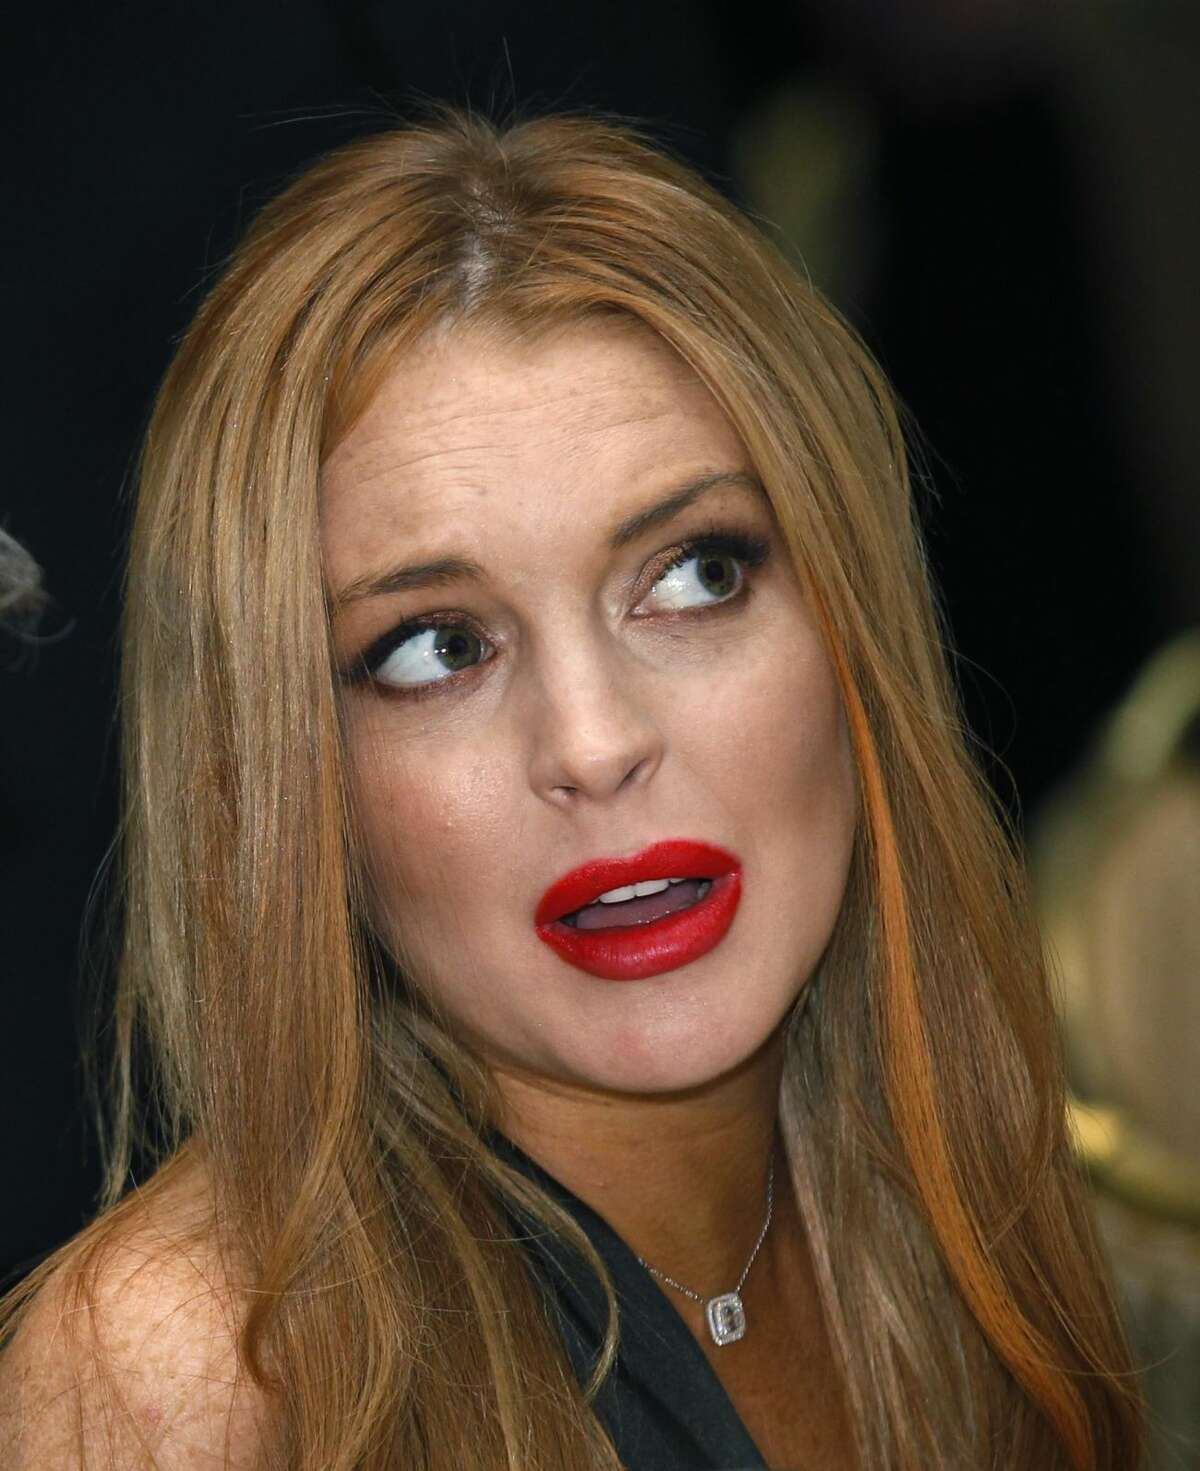 In a Saturday, April 28, 2012 file photo, Lindsay Lohan attends the White House Correspondents' Association Dinner headlined by late-night comic Jimmy Kimmel, in Washington. Police say Lohan was arrested at 2:25 a.m. Wednesday, Sept. 19, 2012, in New York City on charges that she clipped a pedestrian with her car and did not stop. Police say no alcohol was involved. (AP Photo/Haraz N. Ghanbari, File)